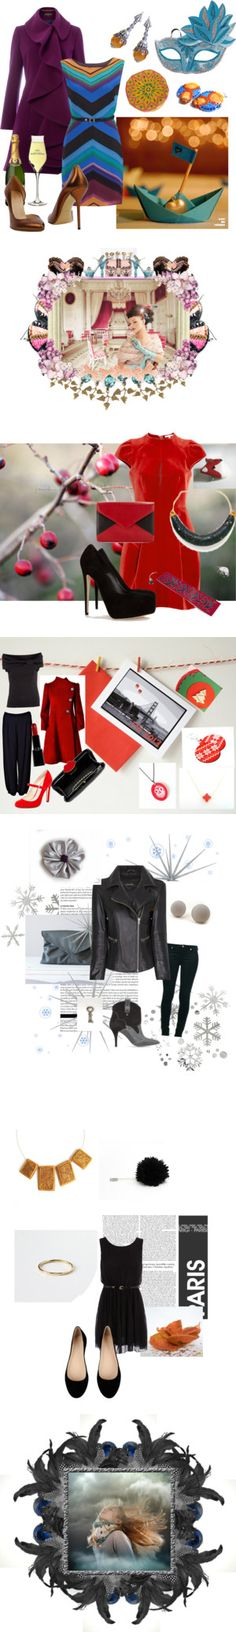 """""""Saturday Style 17 - promotion game - come, play with us! - anyone can join"""" by dorijanki on Polyvore"""